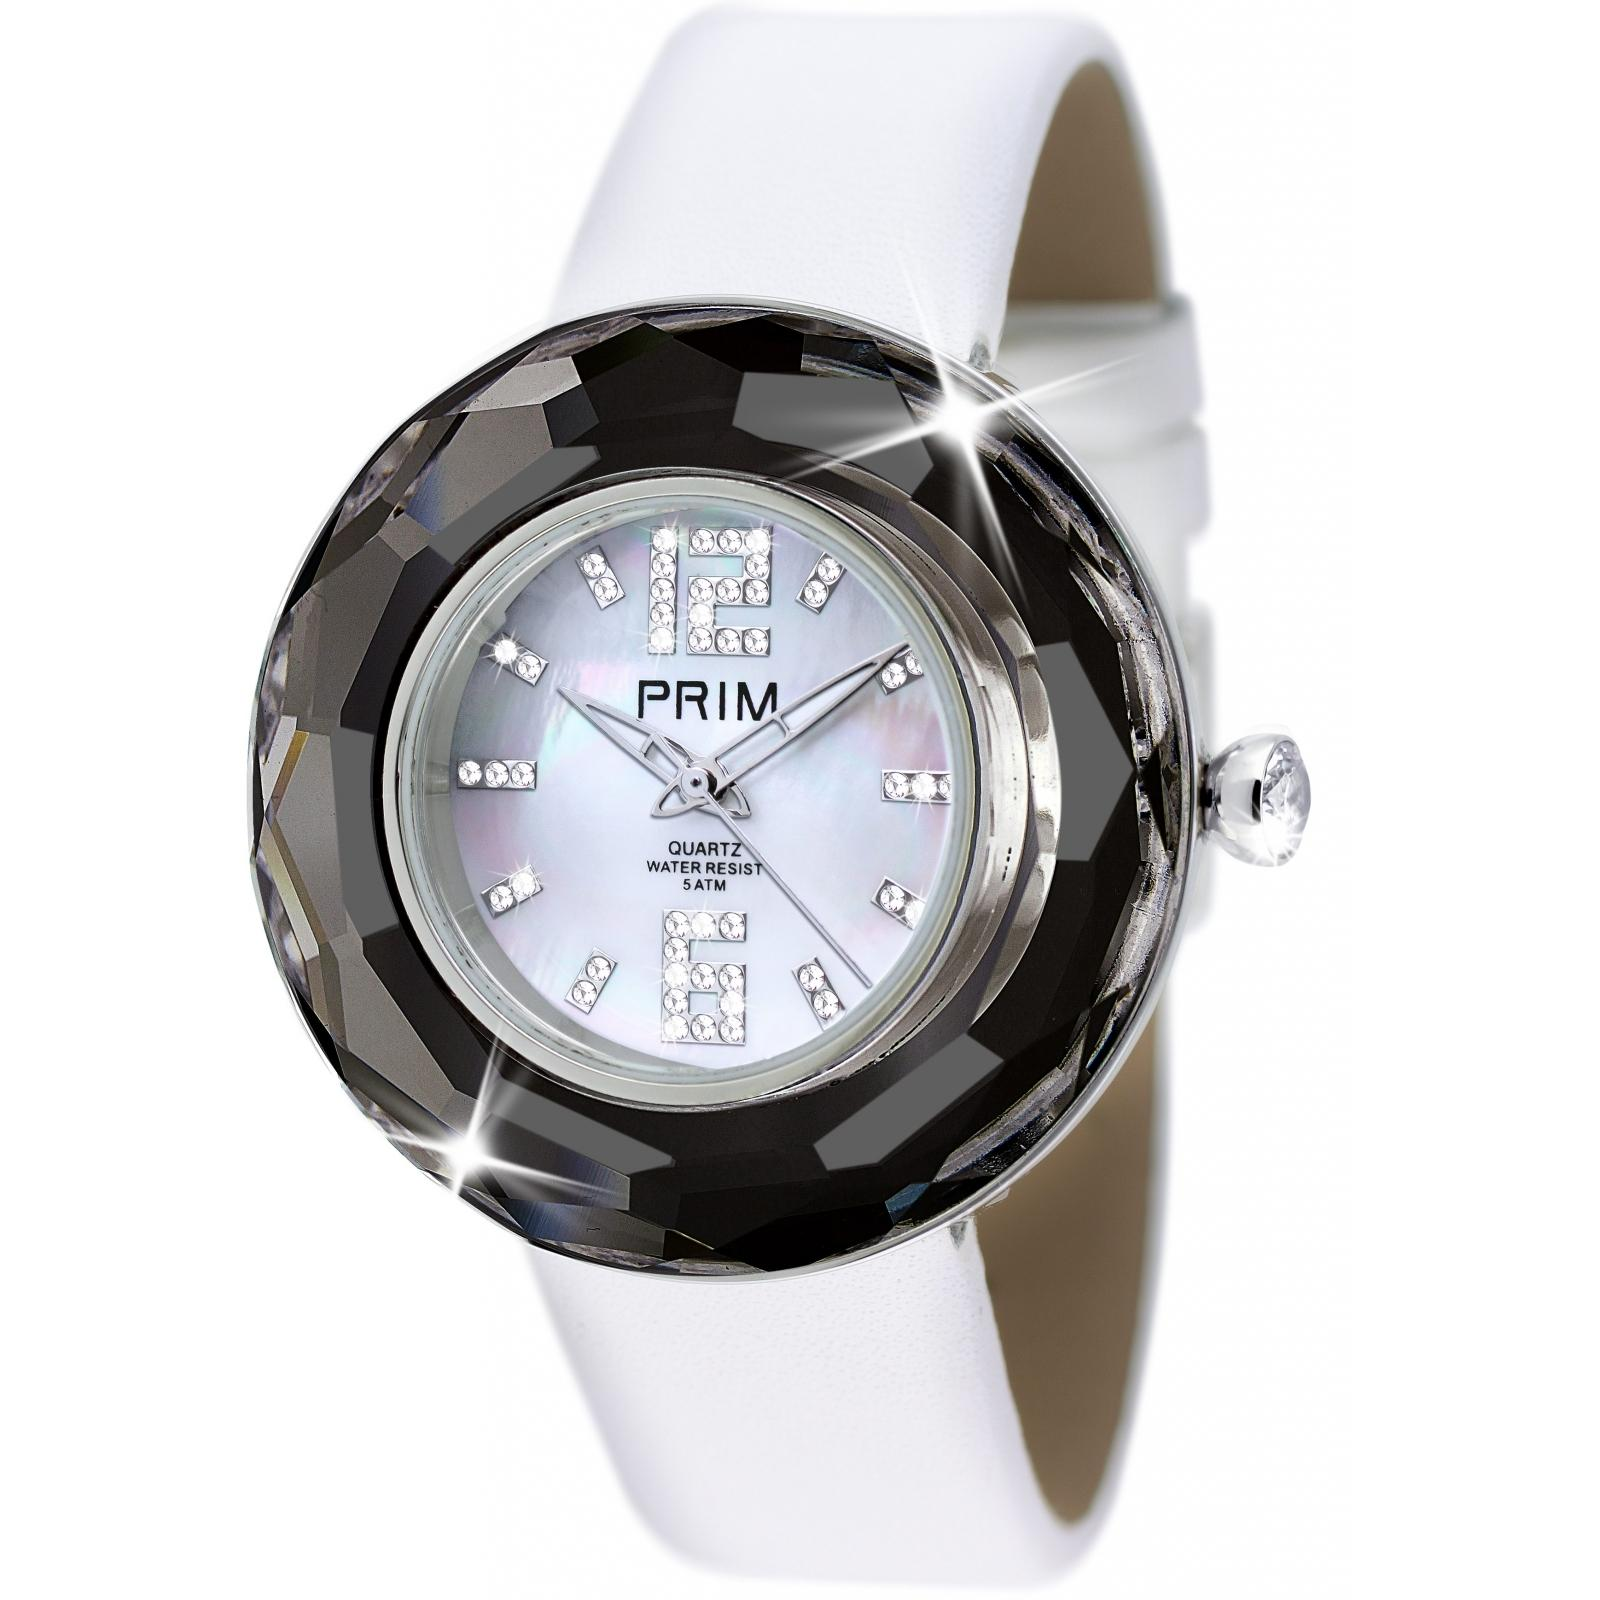 Crystal Time Premium - Ceas Preciosa (Chrome/White)